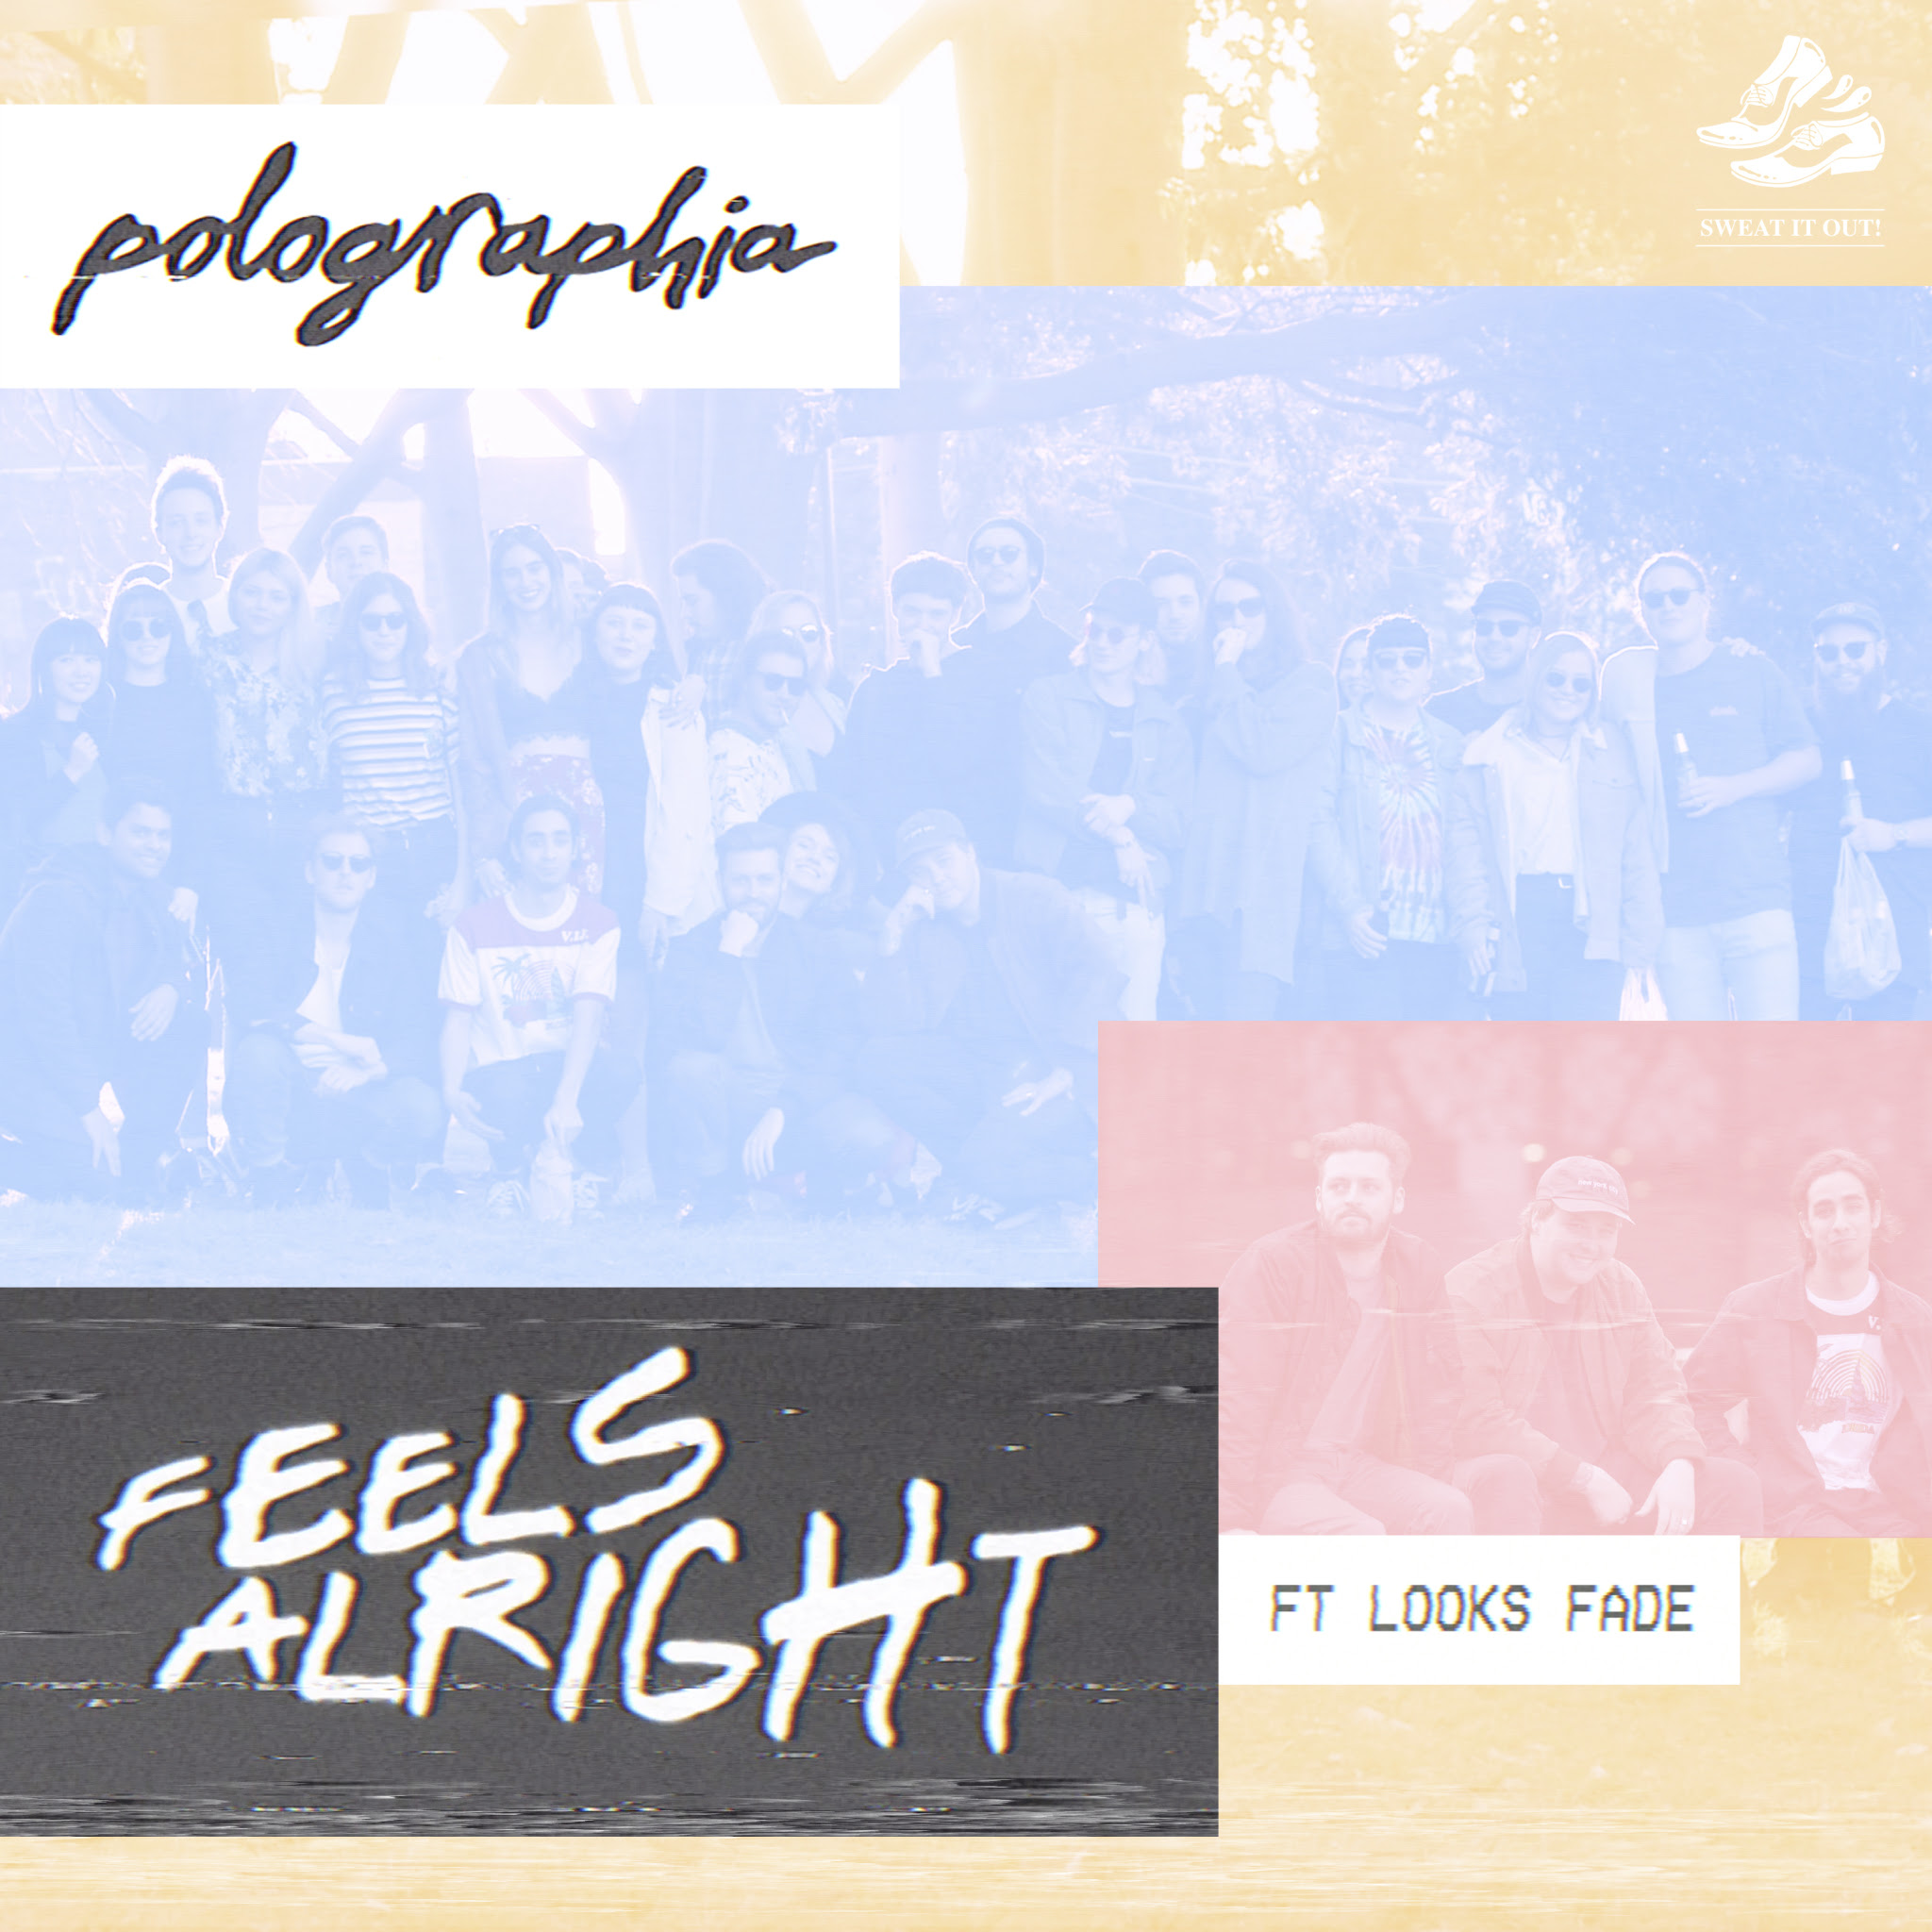 dylts-polographia-feels-alright-ft-looks-fade